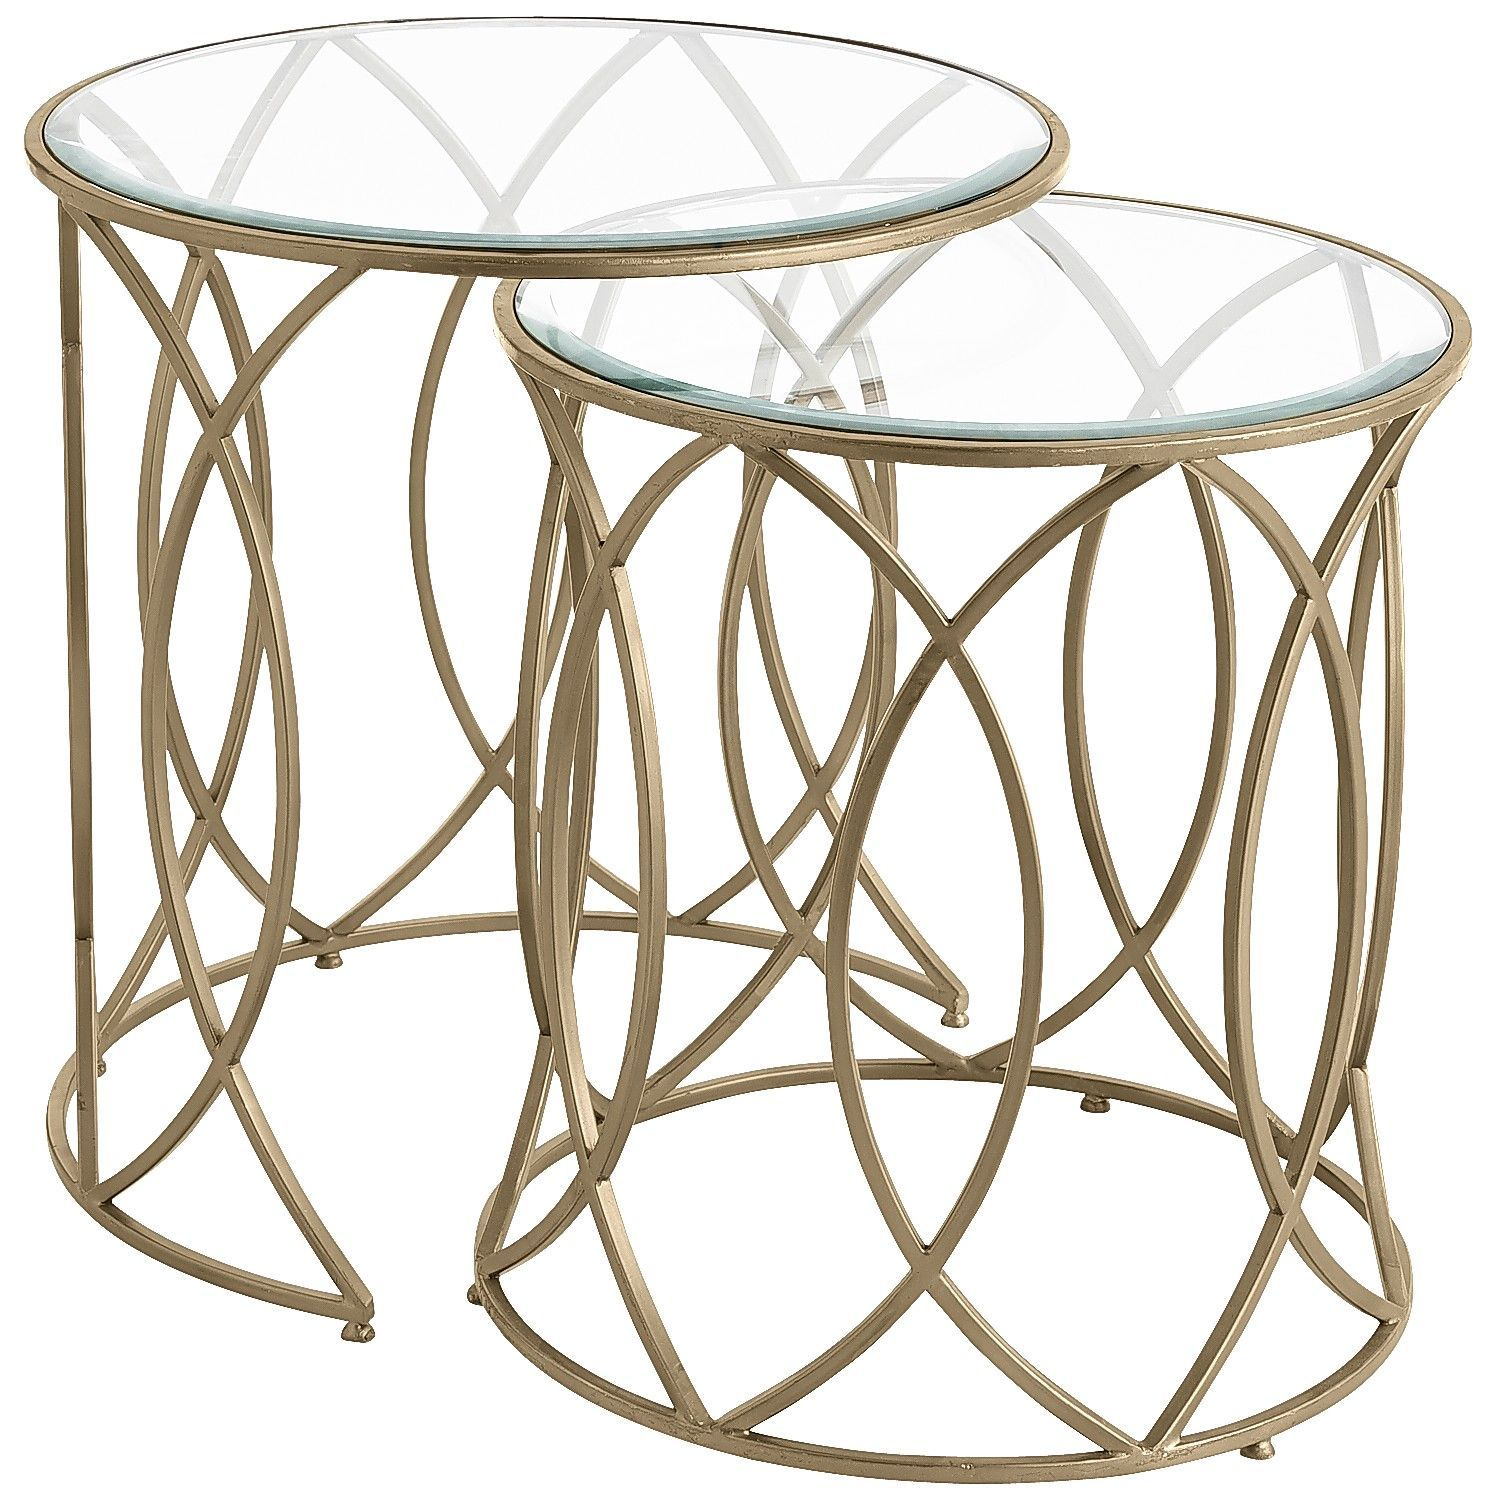 elana bronze iron round nesting tables home pier one anywhere accent table living room side imports black wrought outdoor coffee bar height dining and chairs edison bulb lamp